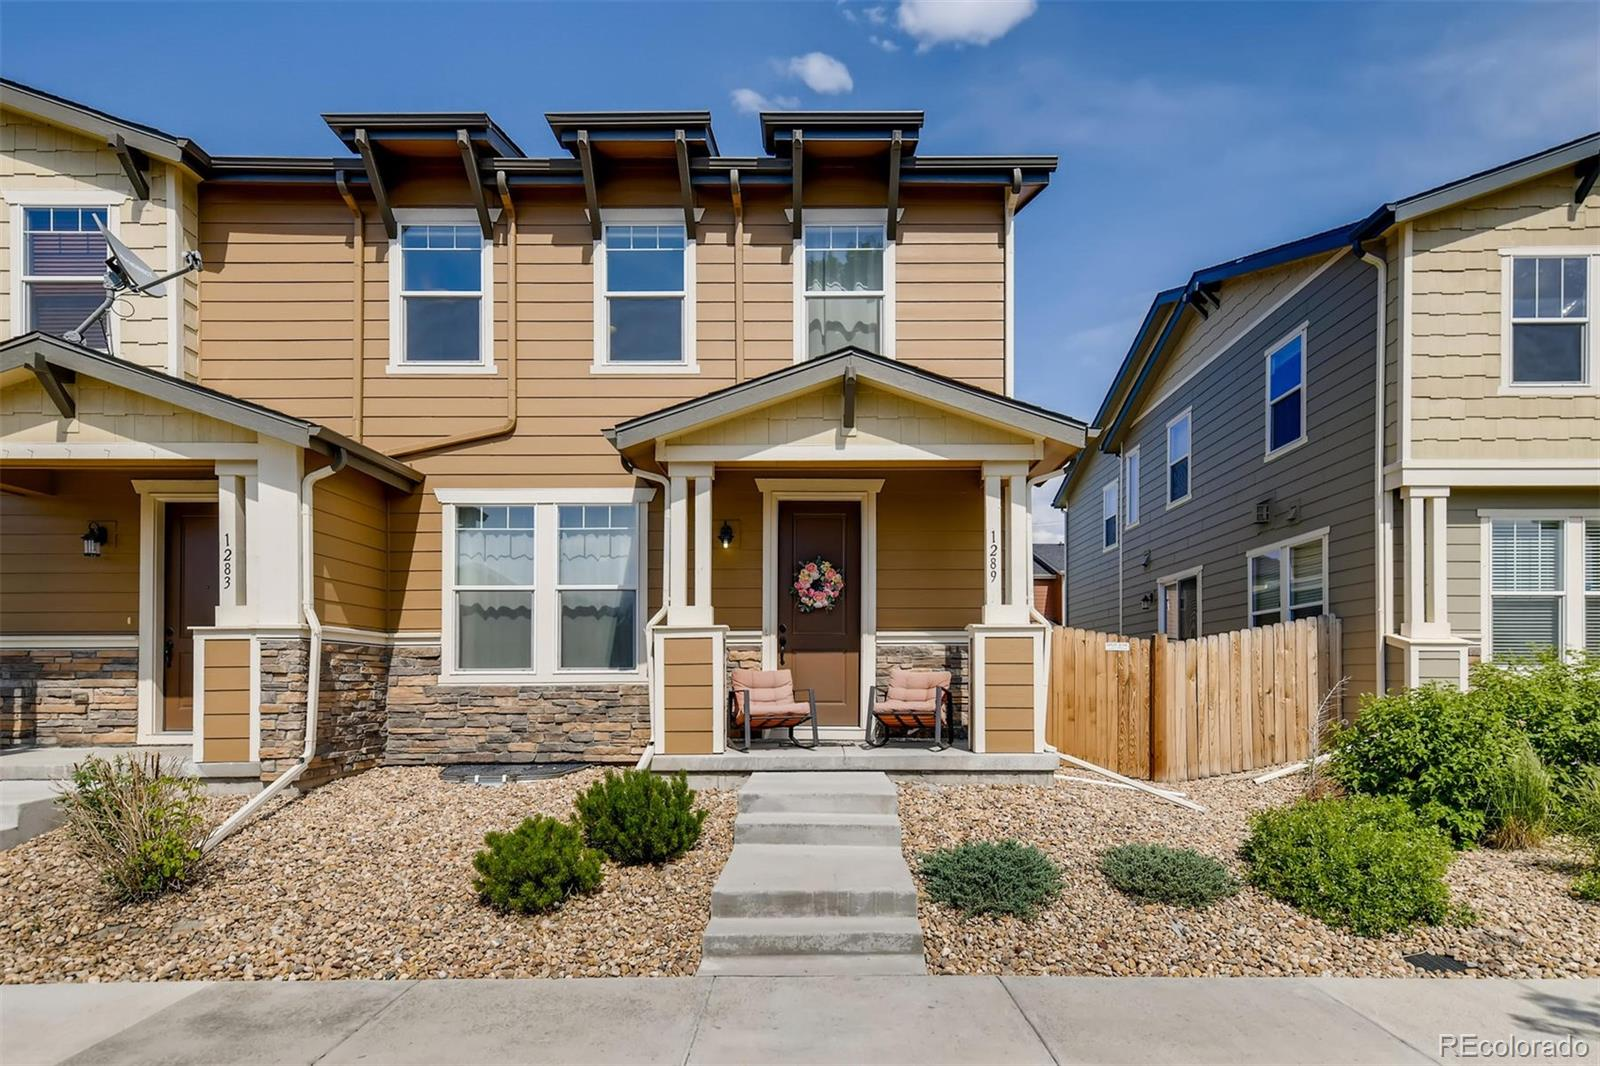 1289 S Dallas Court Property Photo - Denver, CO real estate listing